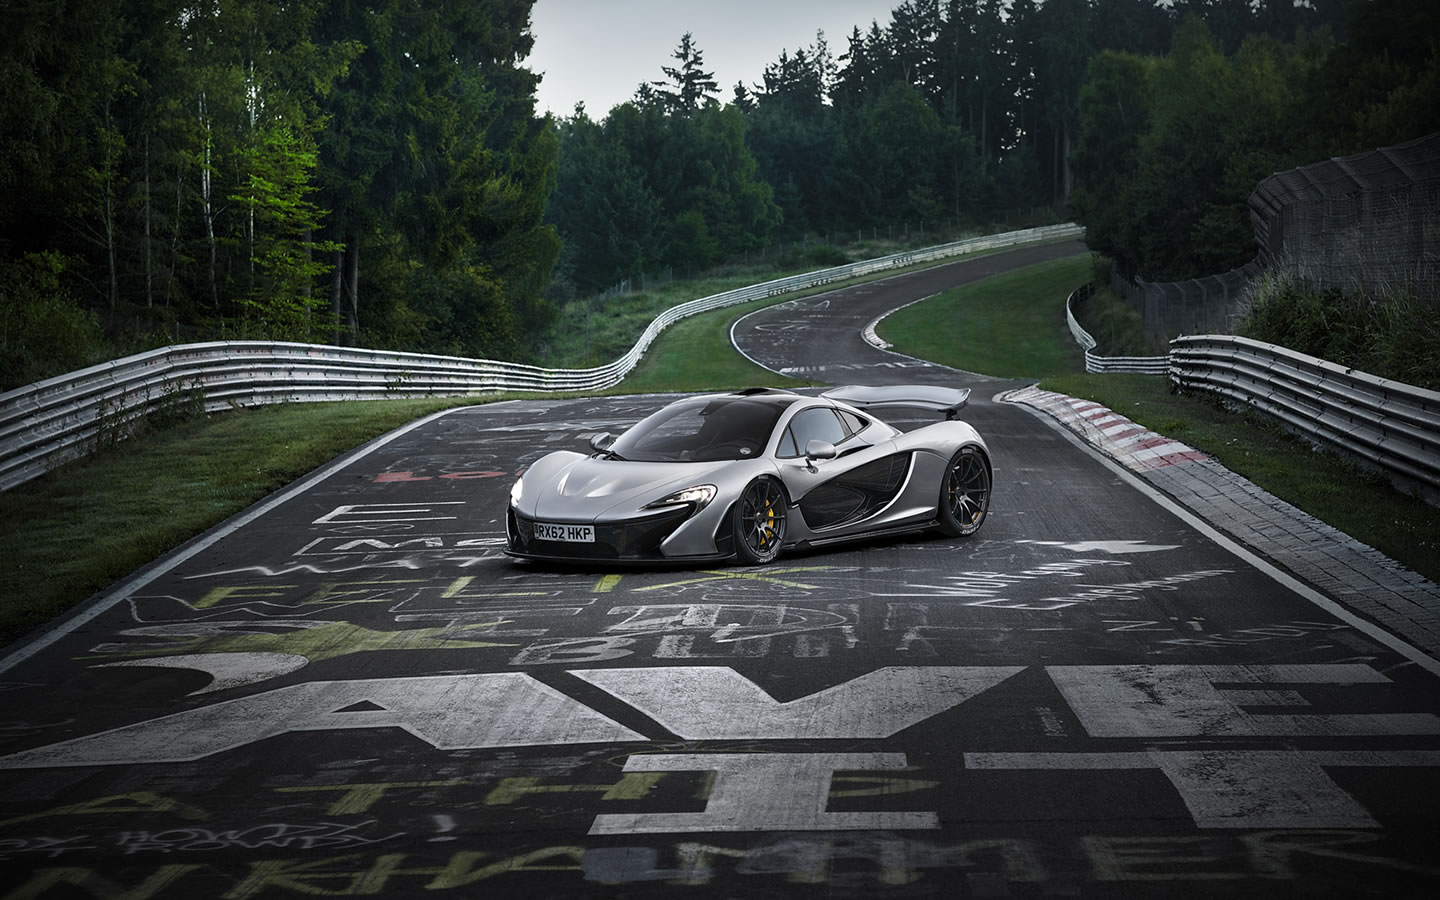 2014 McLaren P1 on Nurburgring Nordschleife Wallpaper - 1440 x 900